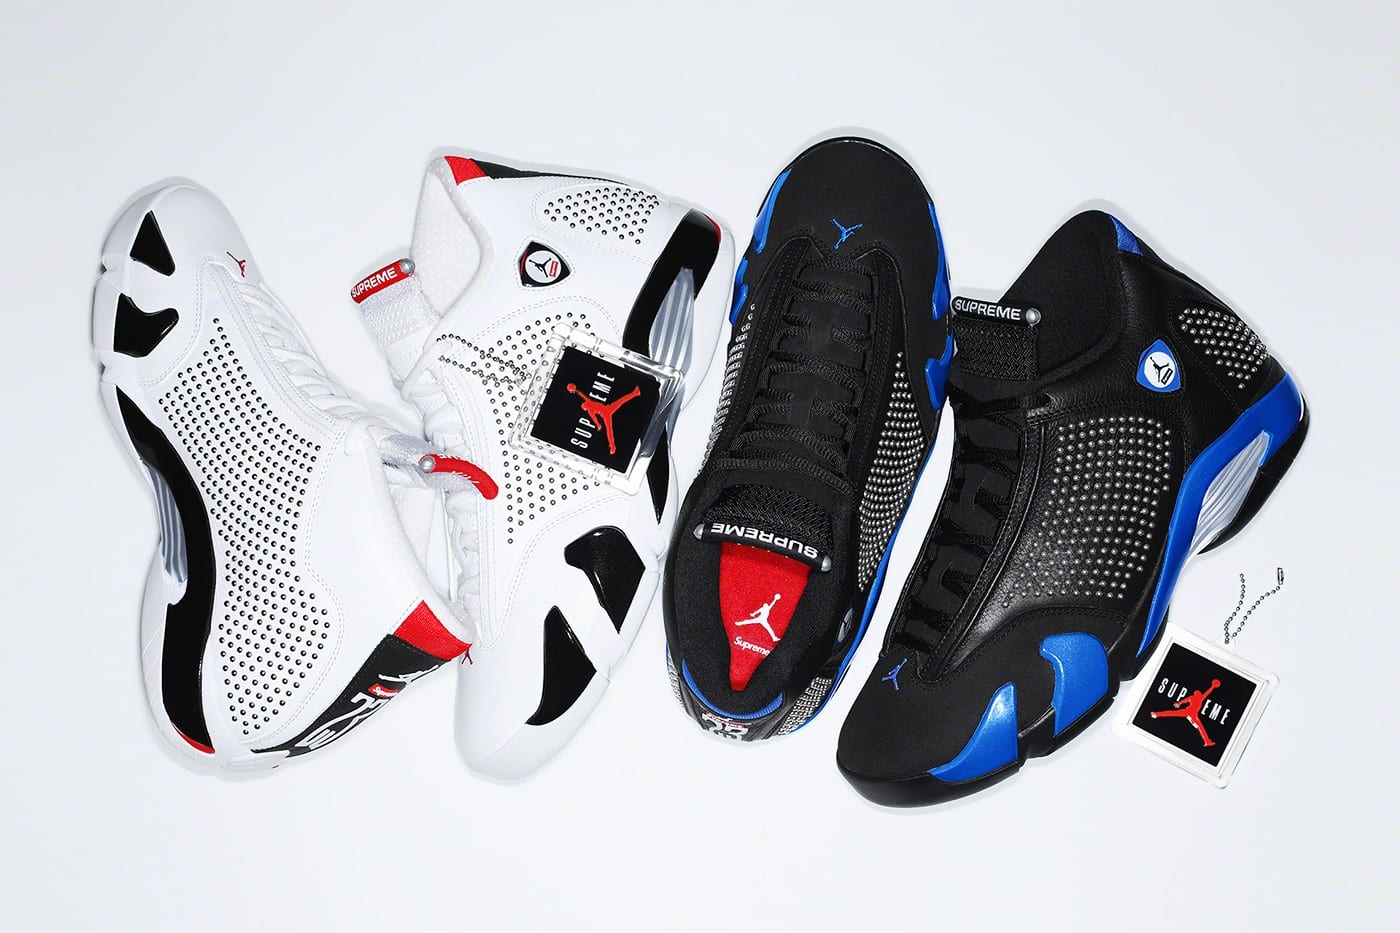 new product b6f2f 1c664 An Official Look at the Supreme x Air Jordan 14 Collab Is Here